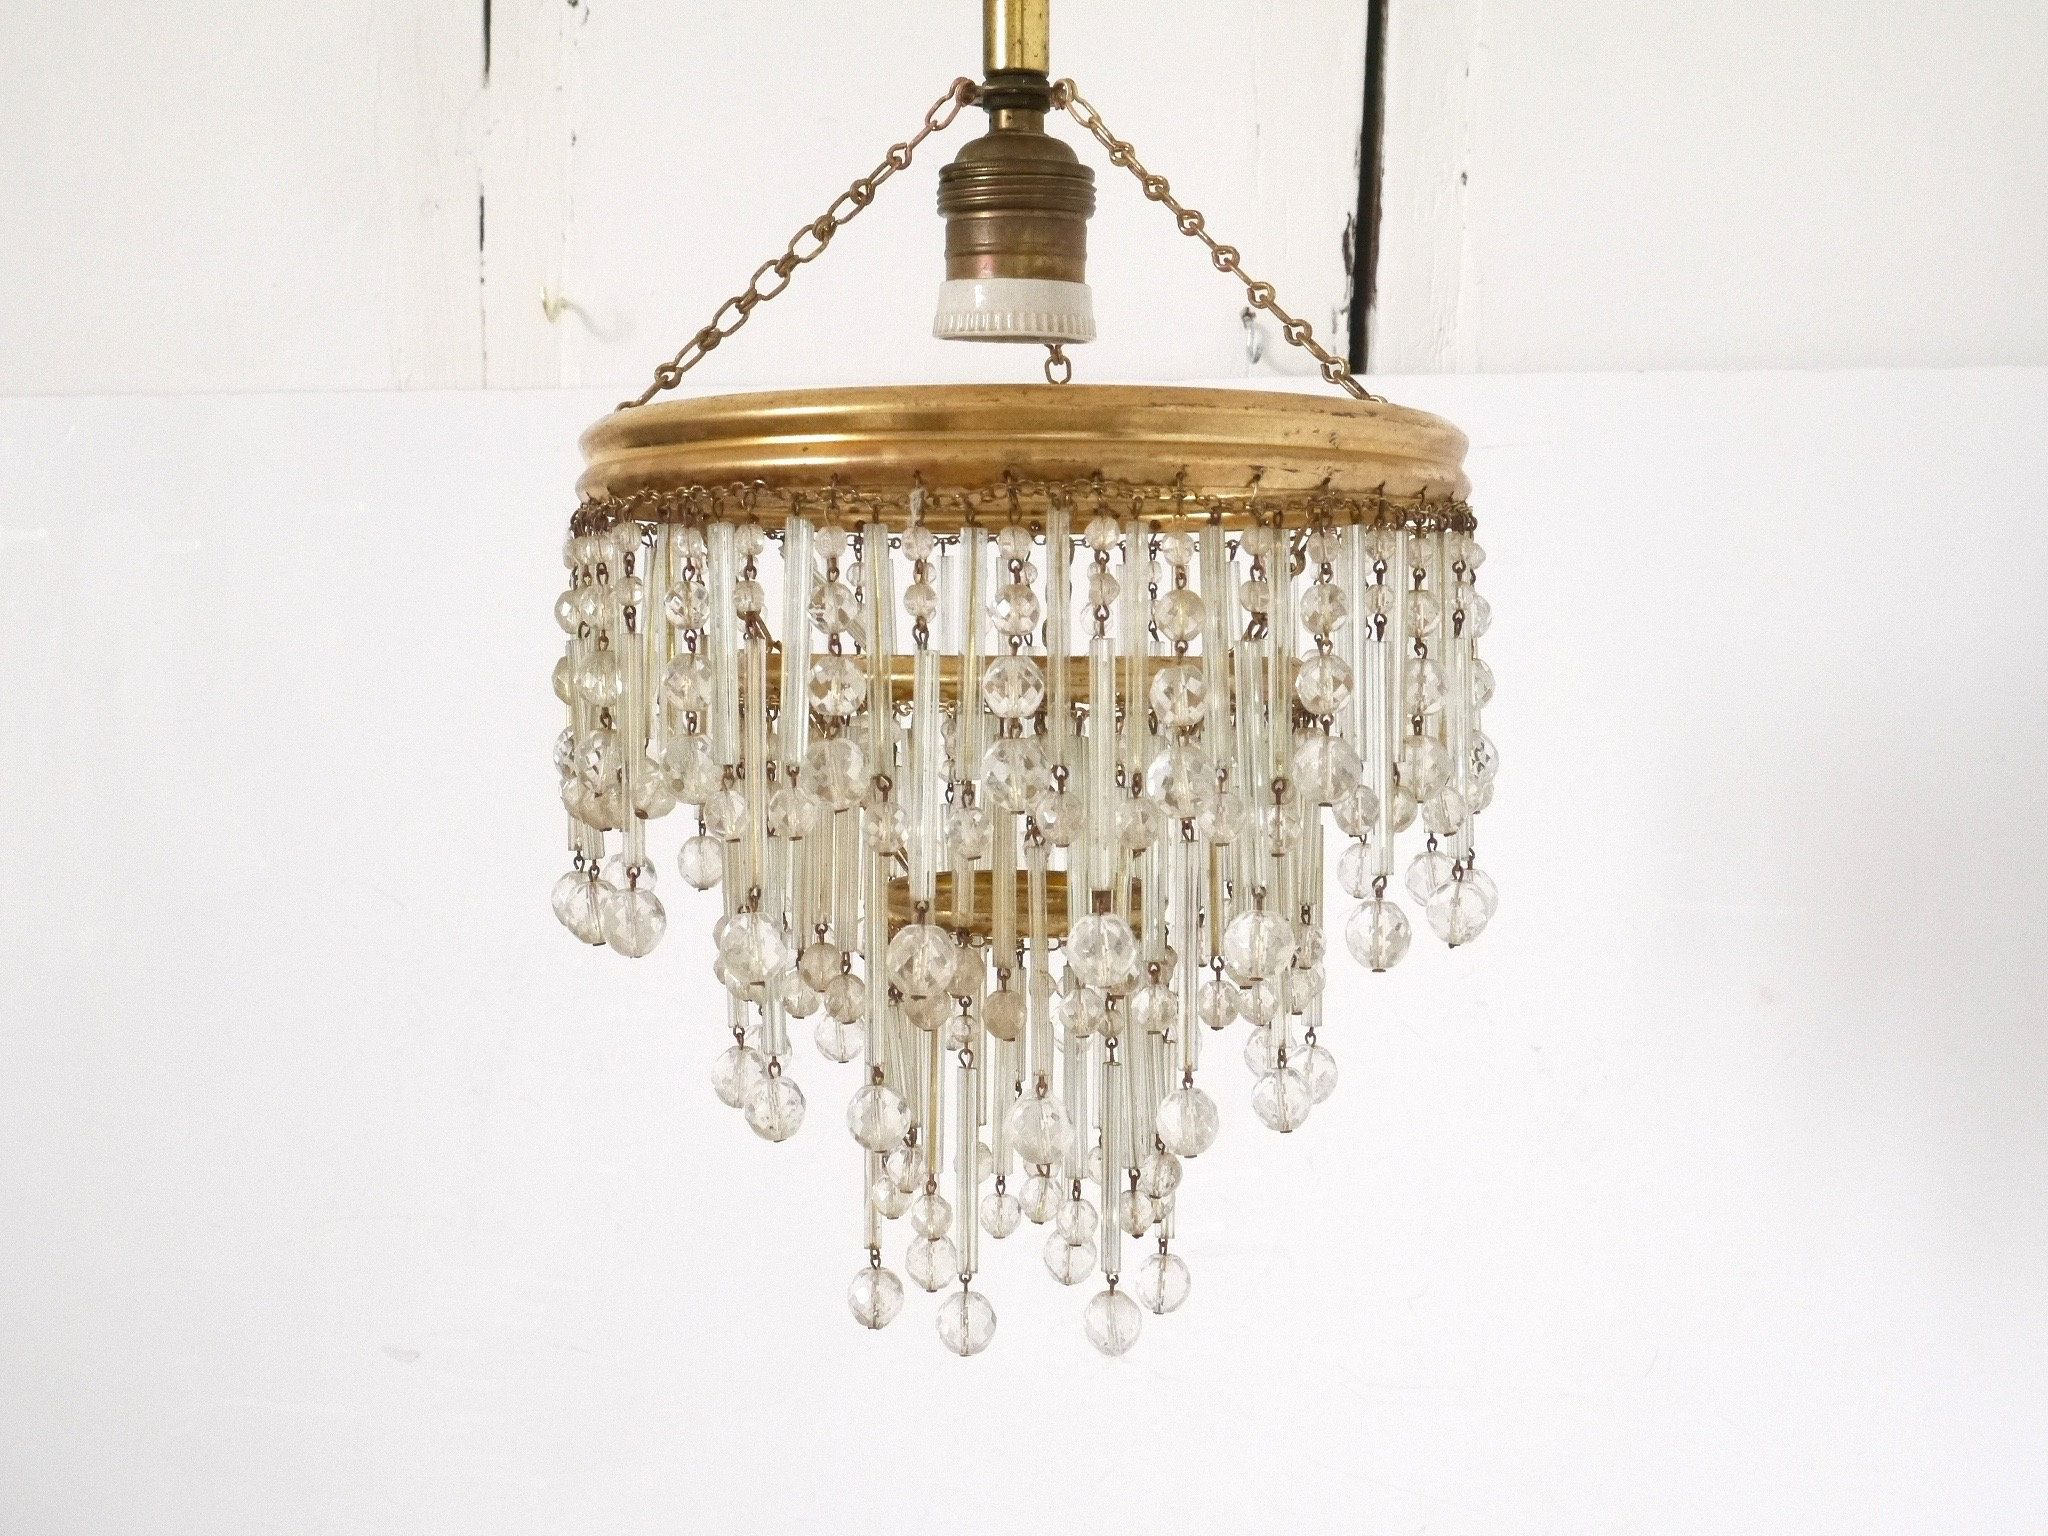 French Vintage Crystal And Brass Chandelier Pendant With Crystal Chains Brass Chandelier Chandelier French Vintage